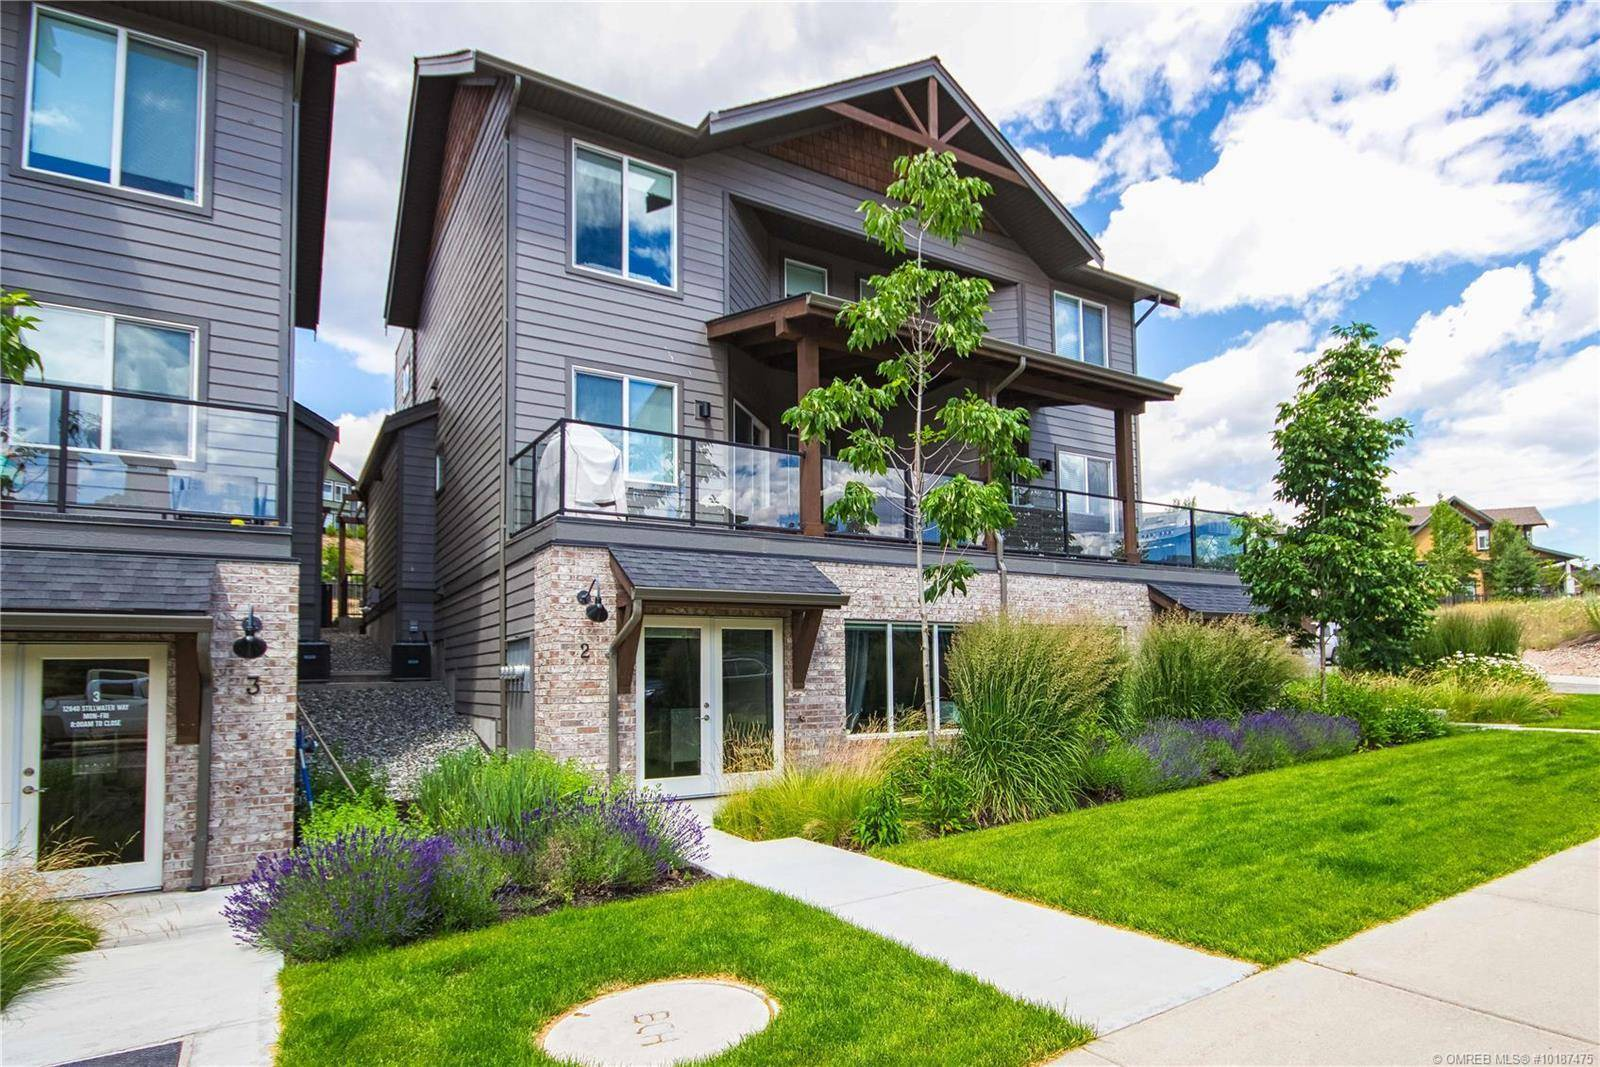 Home for sale at 12840 Stillwater Ct Unit 2 Lake Country British Columbia - MLS: 10187475